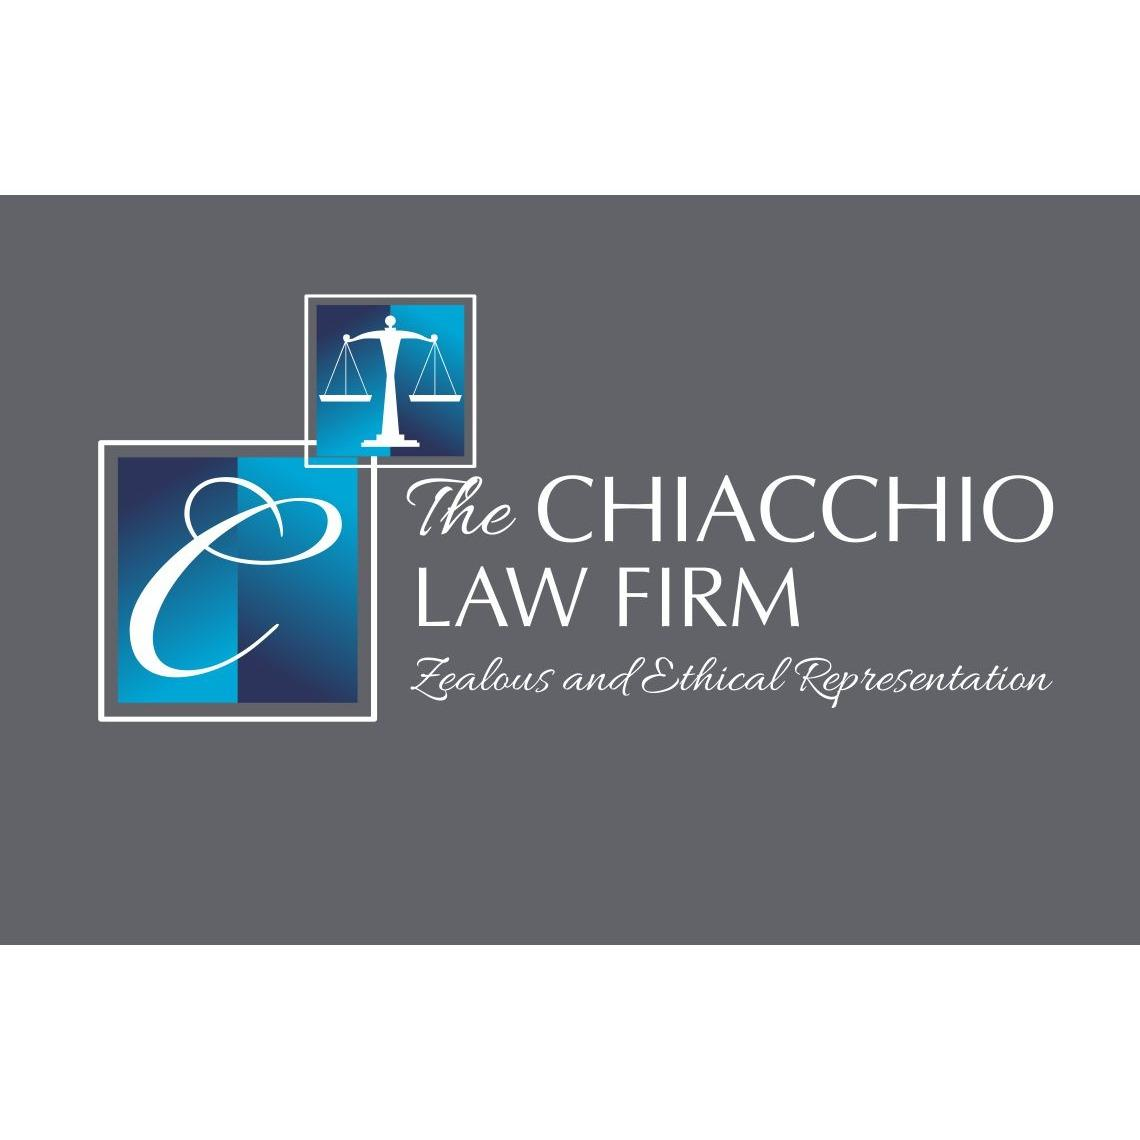 The Chiacchio Law Firm